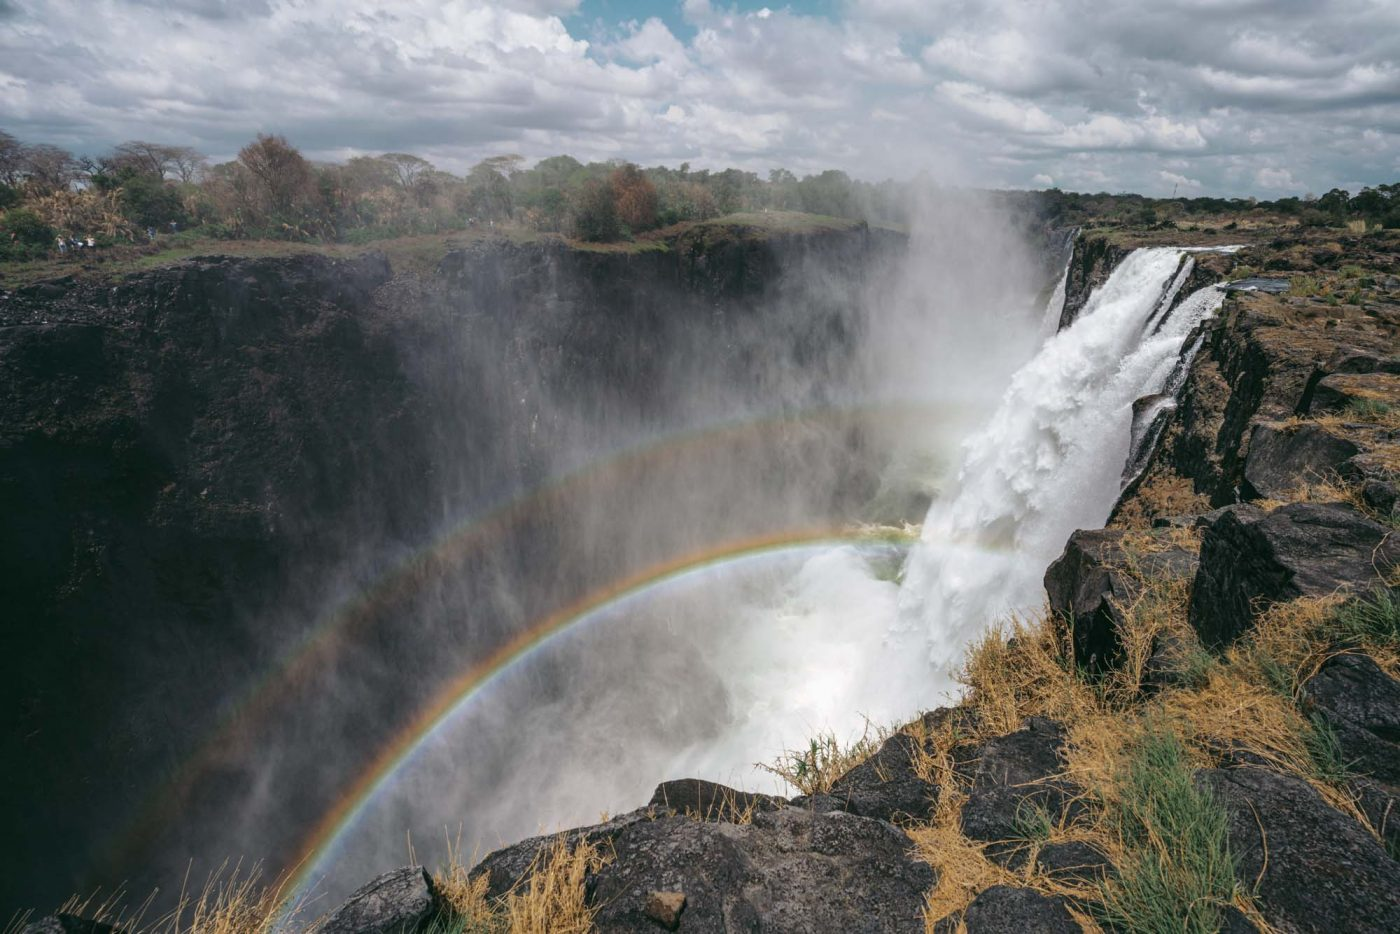 View of Victoria Falls from the Zambian side